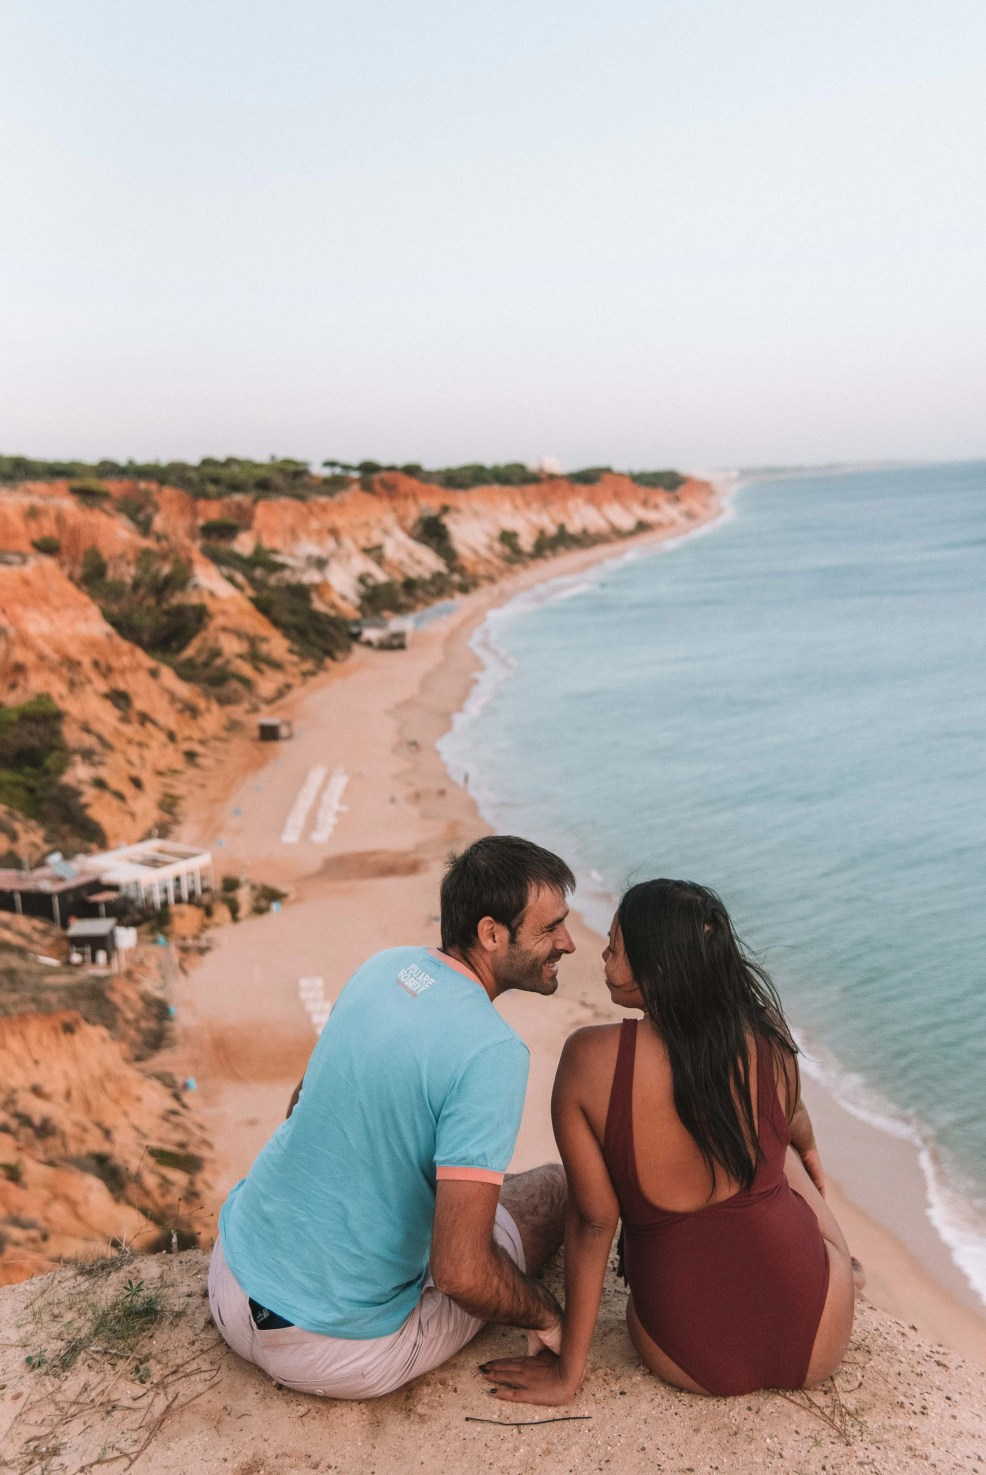 Instagrammable places in Algarve, Praia da Falesia